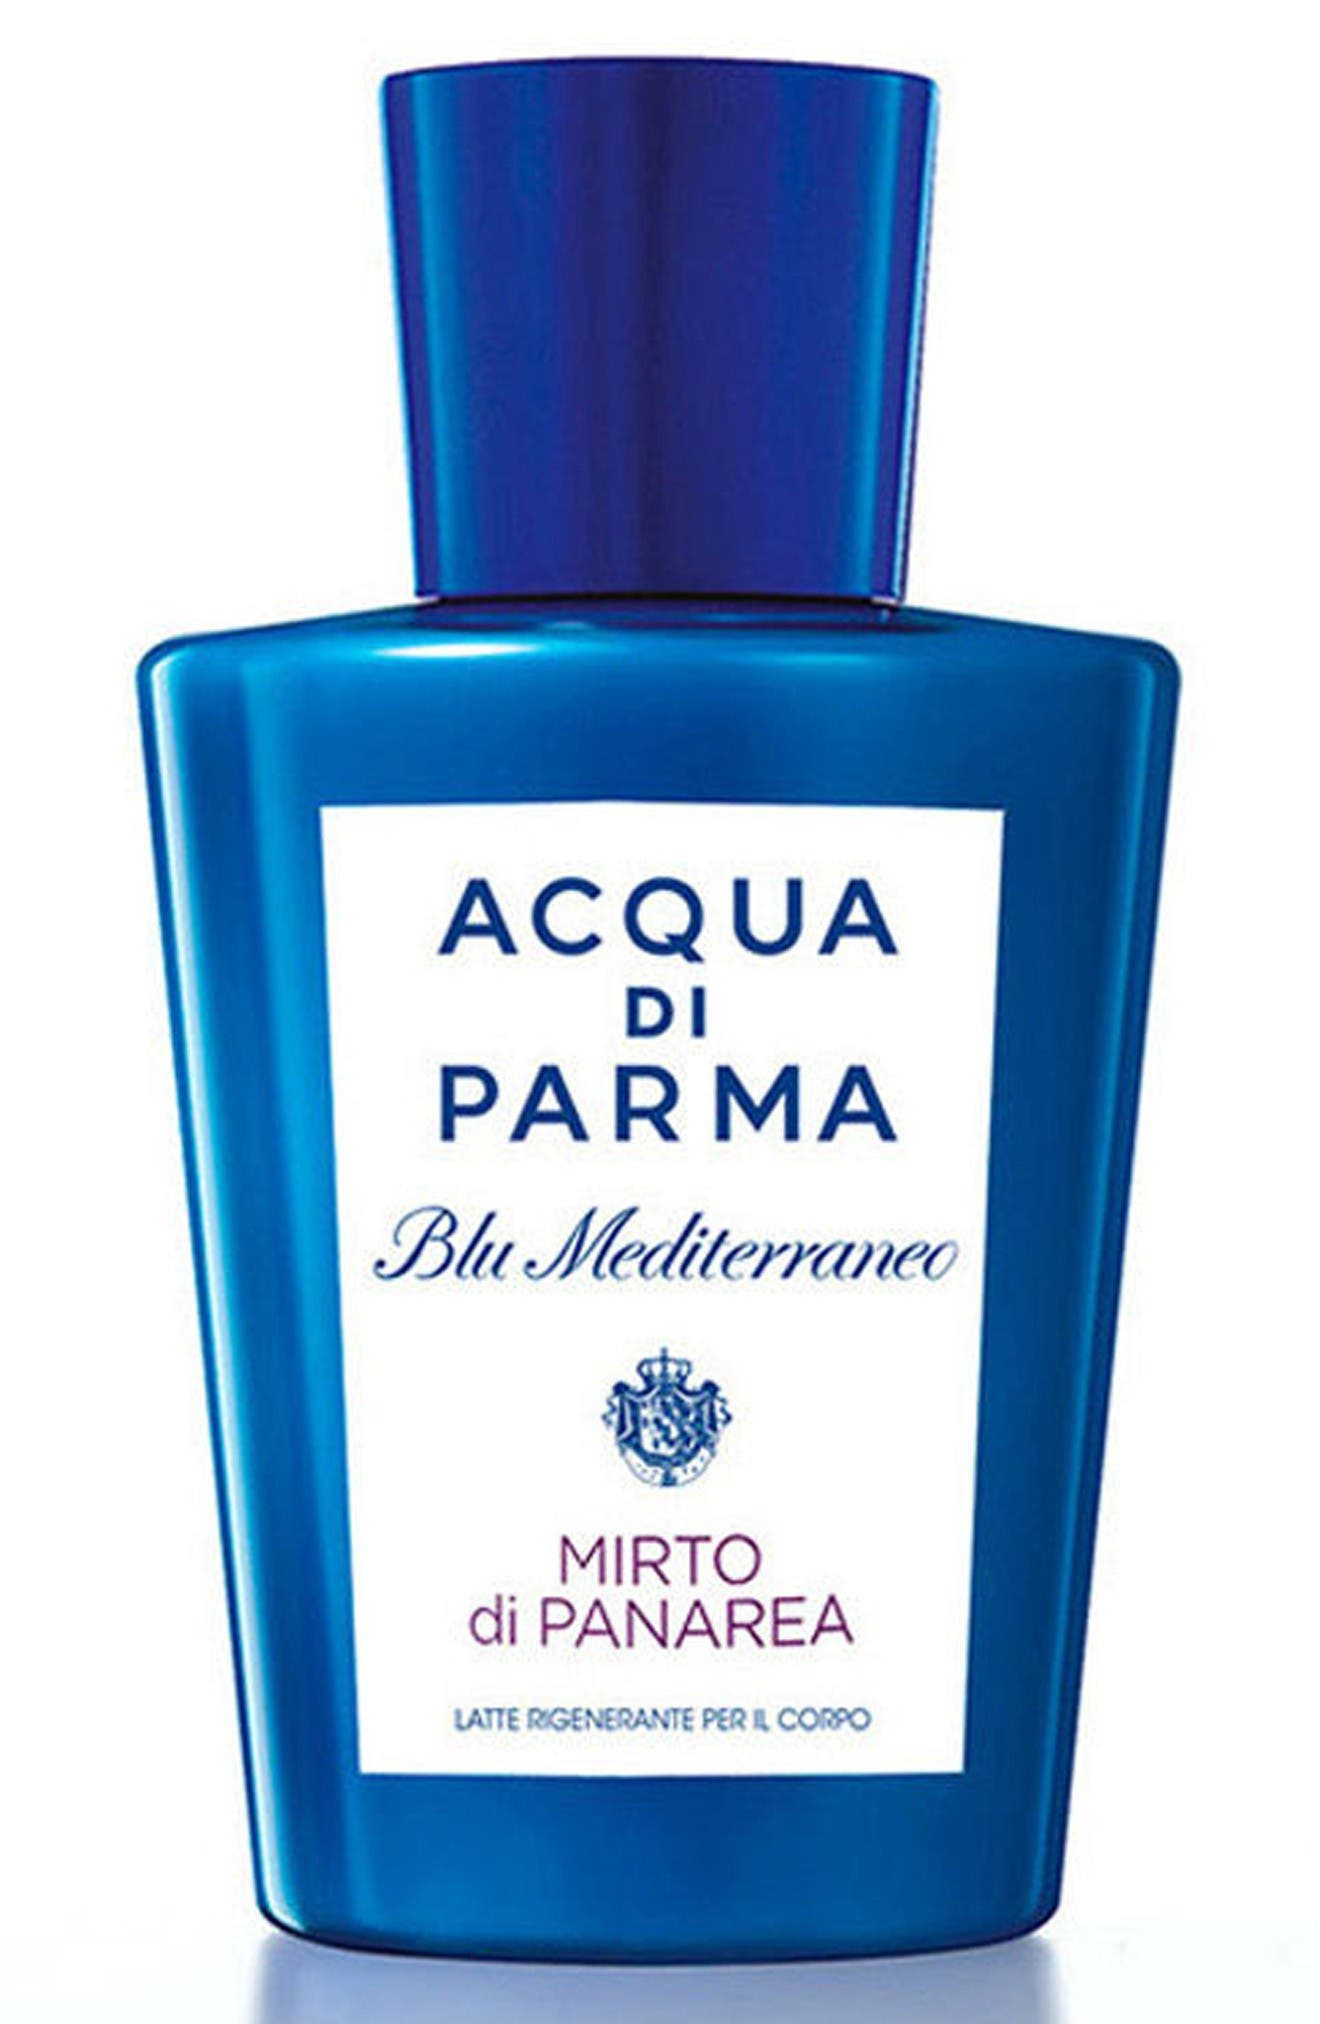 Alternate Image 1 Selected - Acqua di Parma 'Blu Mediterraneo' Mirto di Panarea Body Lotion